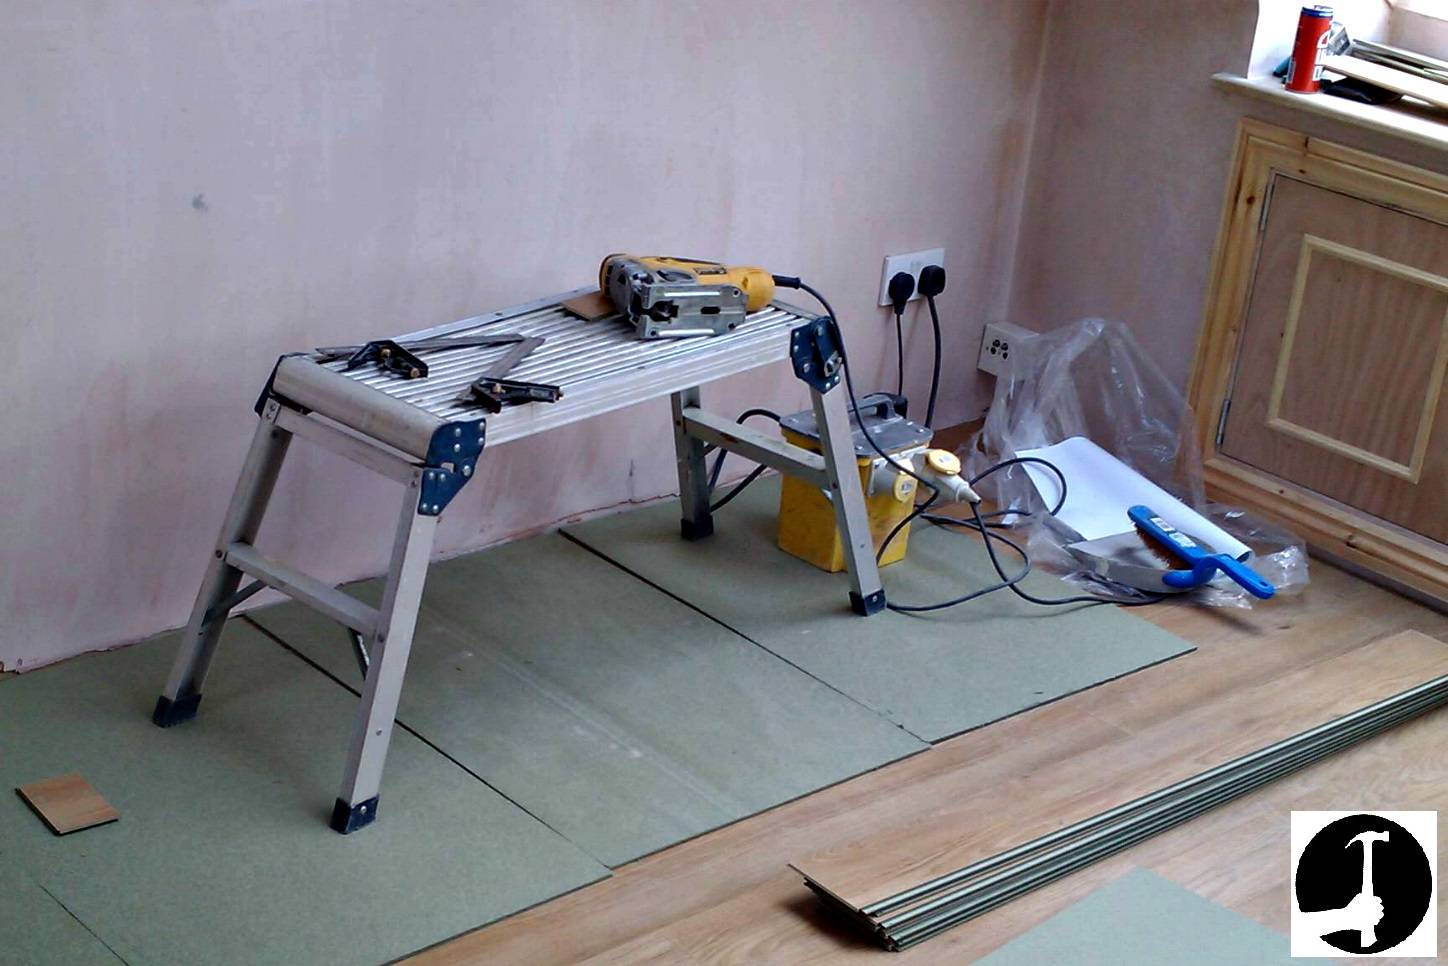 Laminate Flooring Tools And Cutters, What Saw Blade To Use For Cutting Laminate Flooring